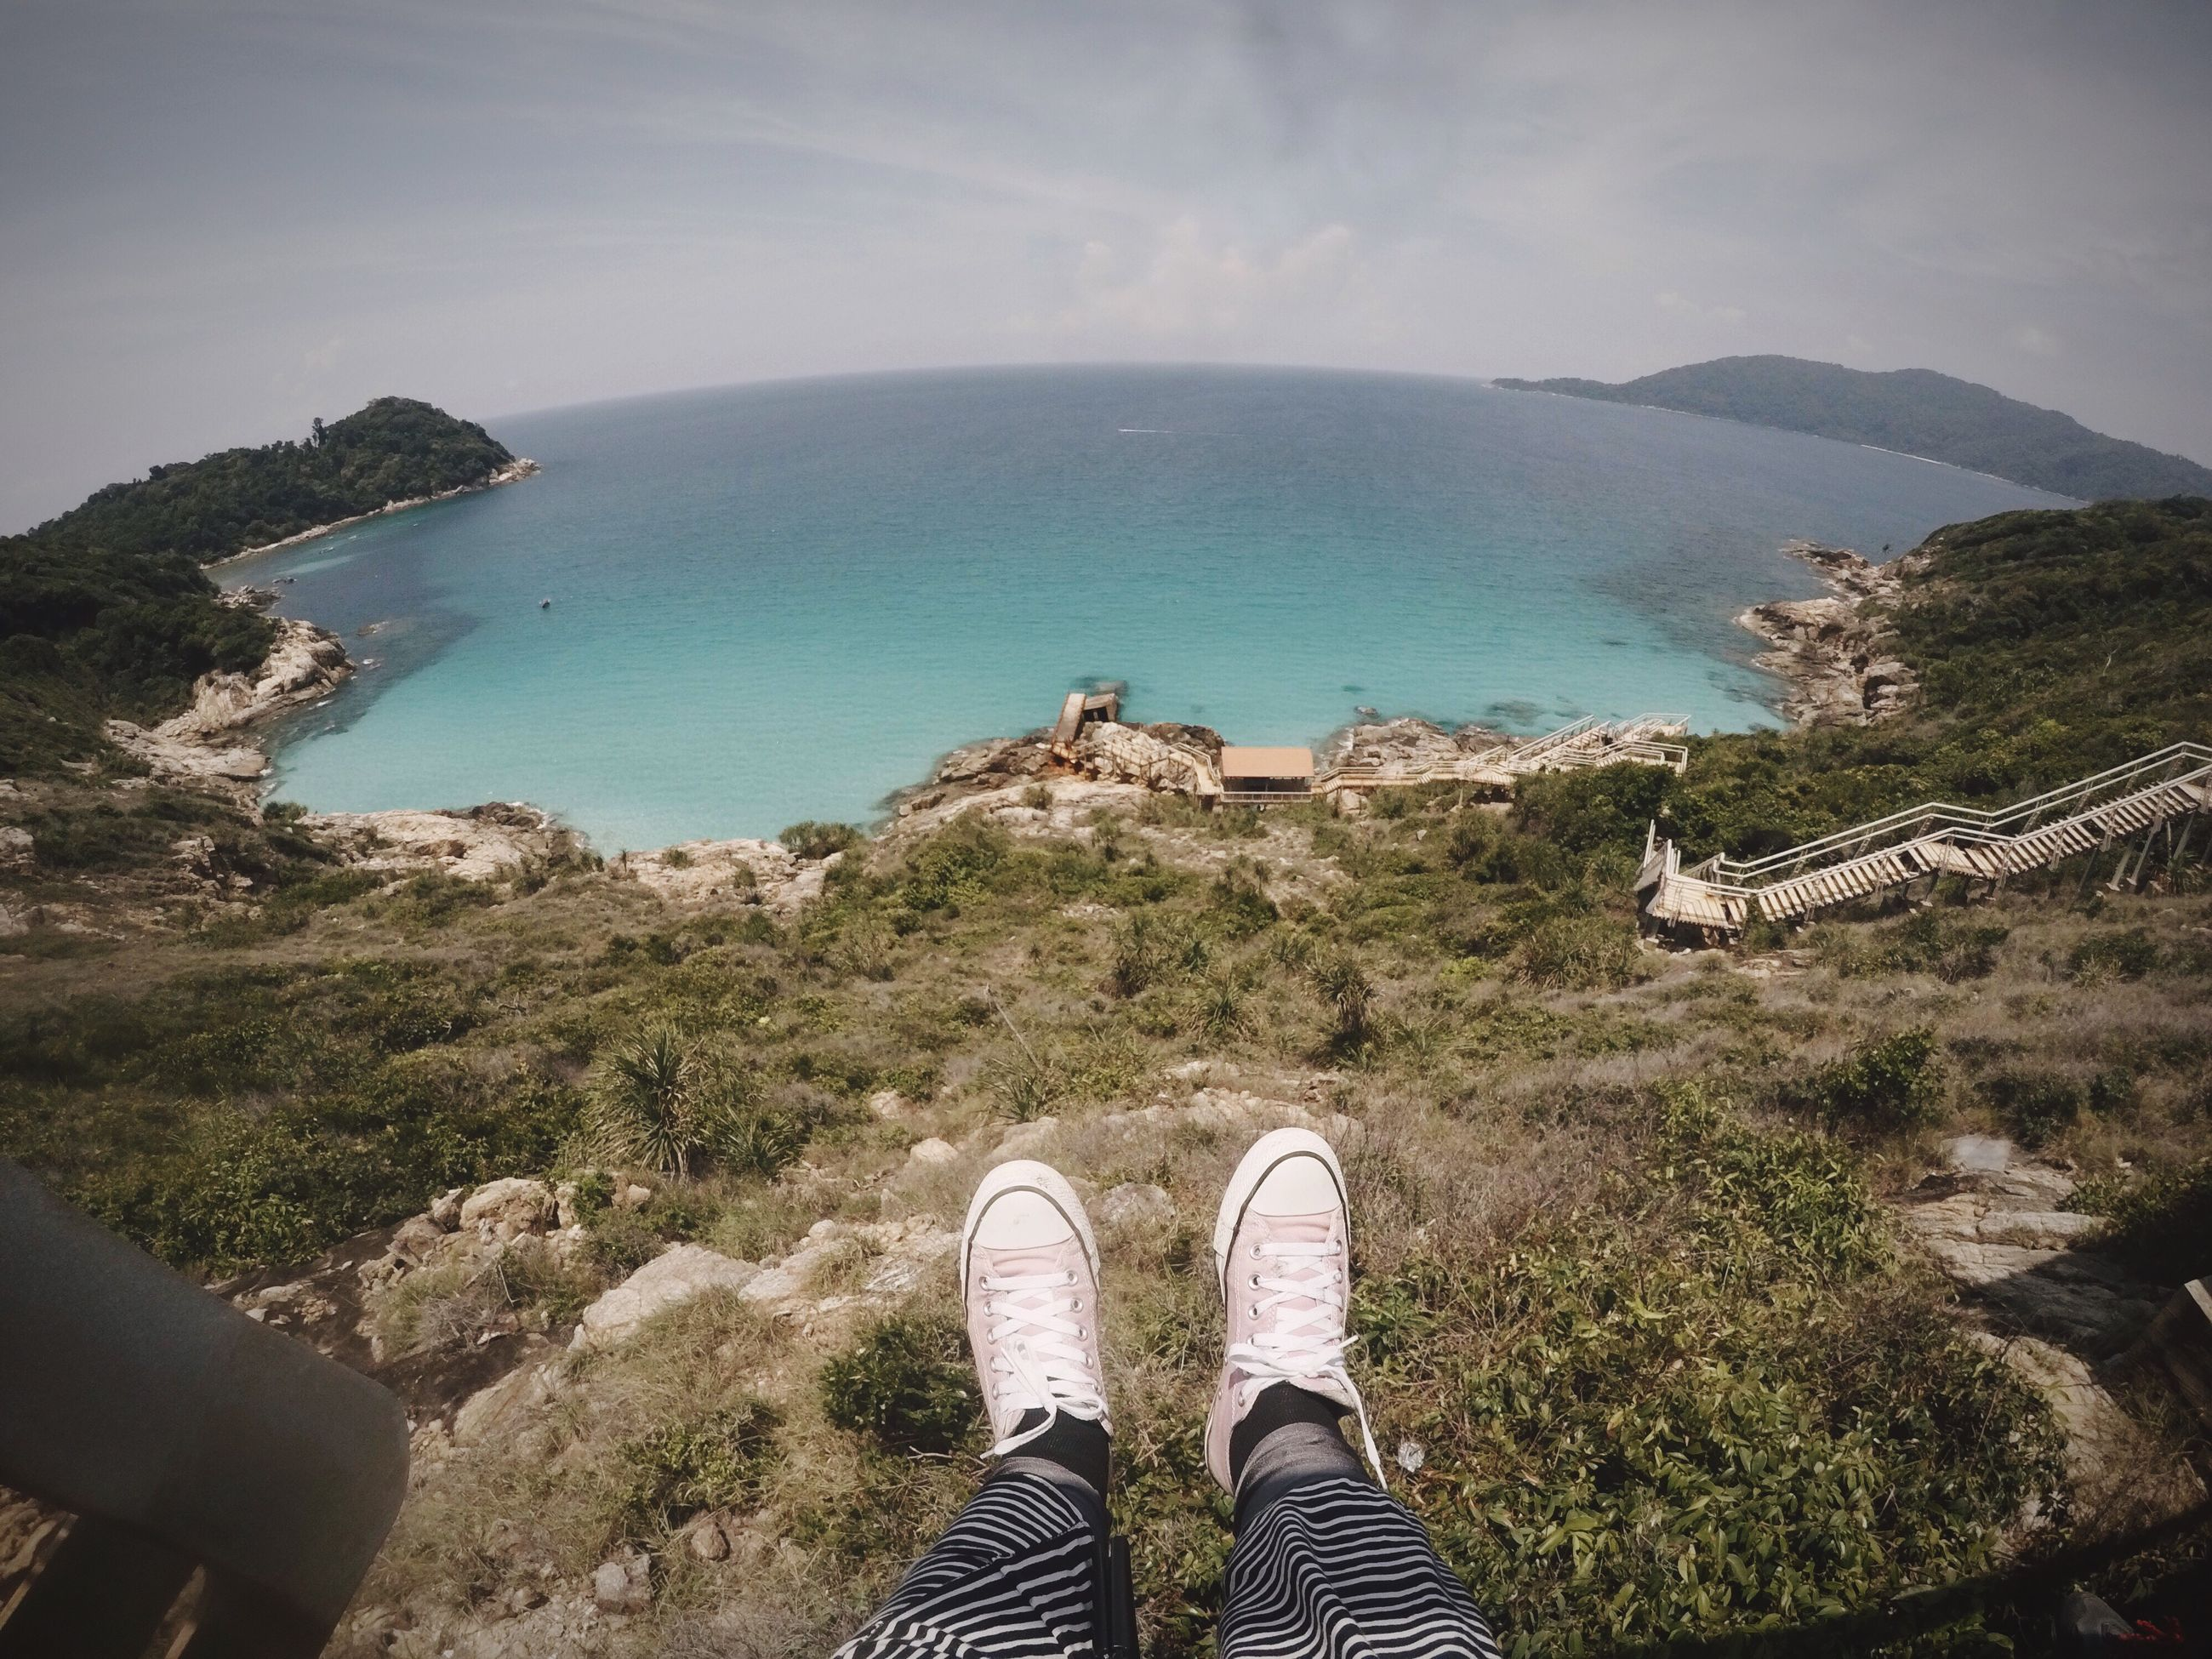 high angle view, personal perspective, water, scenics, nature, beauty in nature, day, real people, mountain, one person, sea, shoe, human leg, tranquility, cliff, sky, low section, outdoors, plant, landscape, standing, horizon over water, people